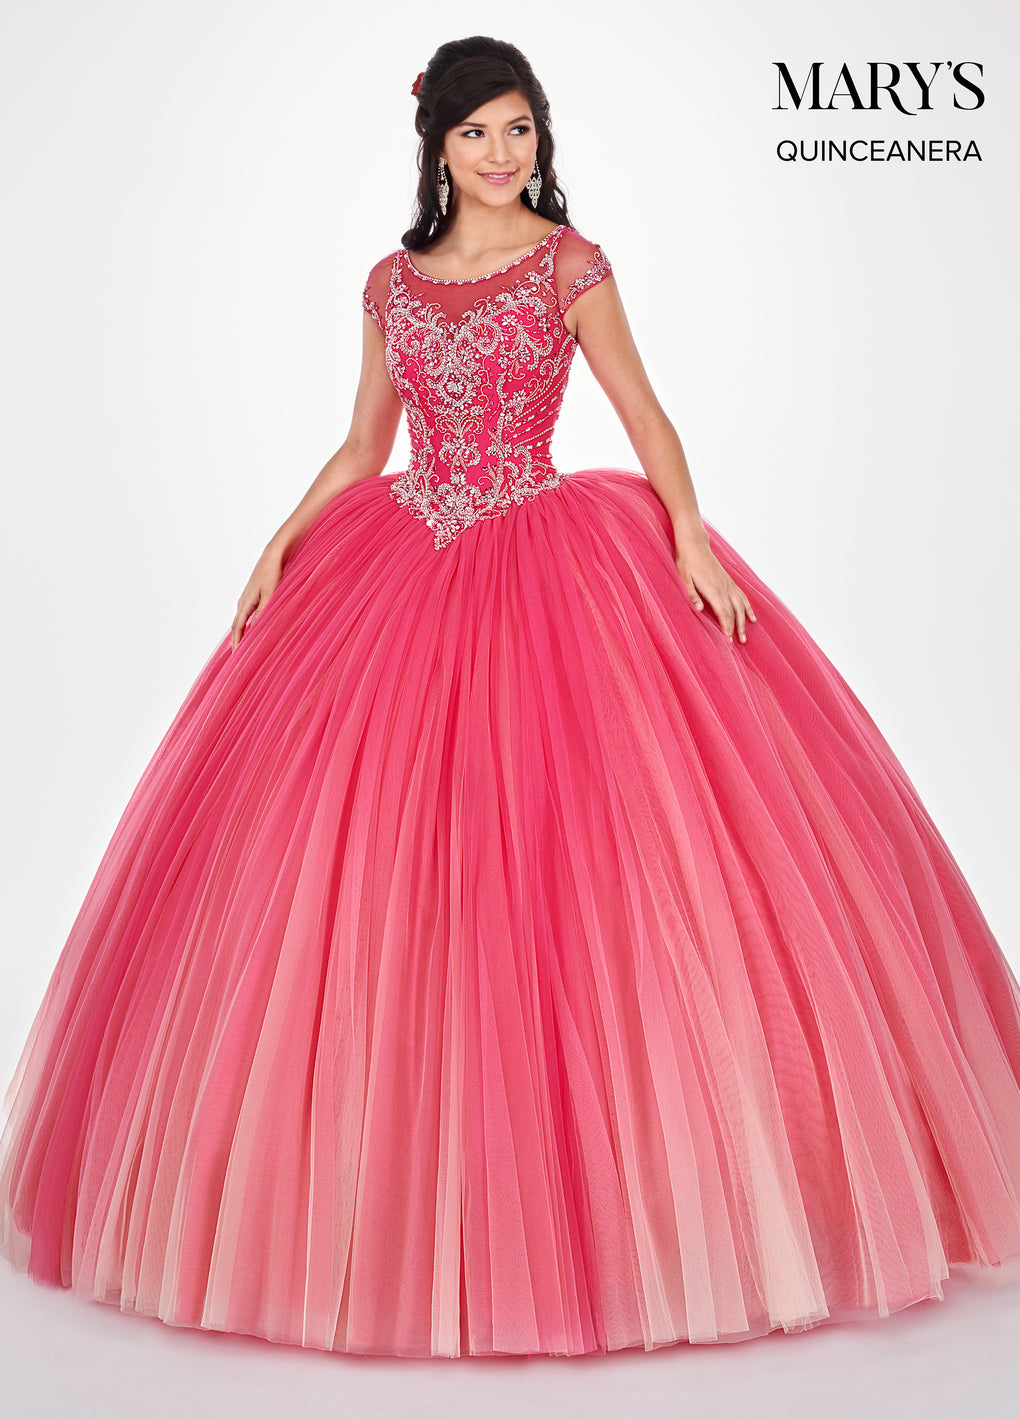 Marys Quinceanera Dresses in Royal/Turquoise Ombre or Magenta Ombre Color